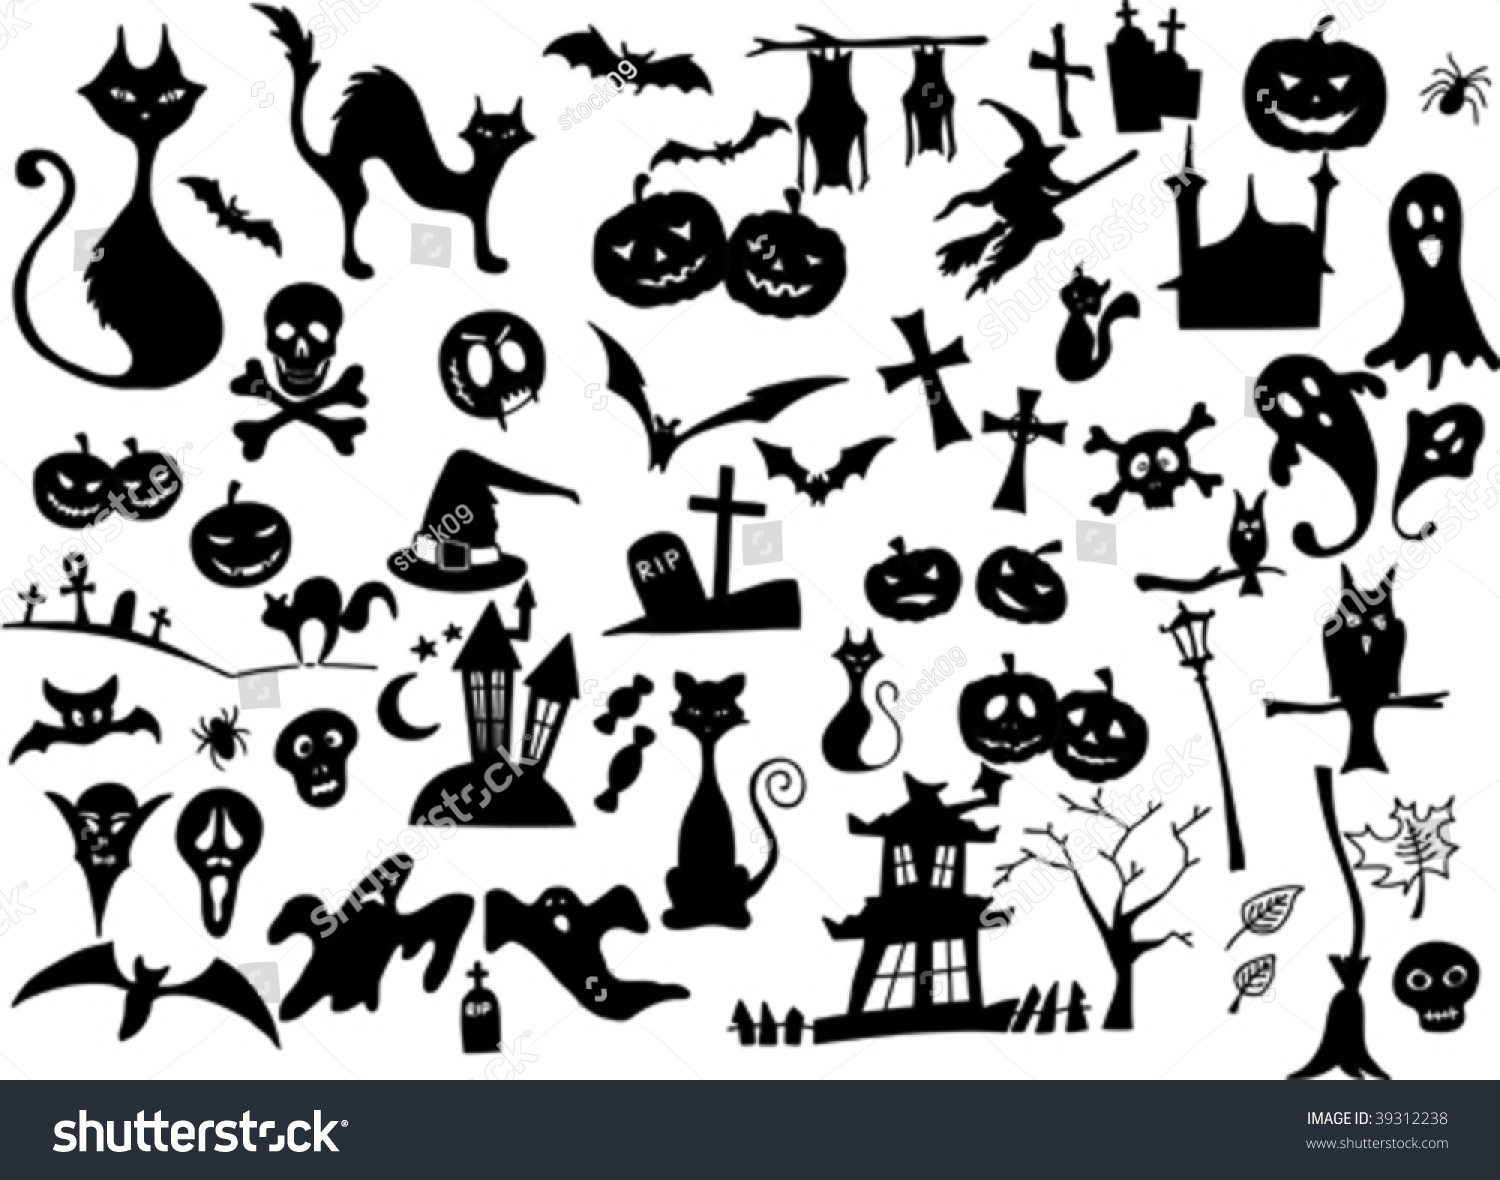 Vector Collection Of Halloween Silhouettes - More Available ...